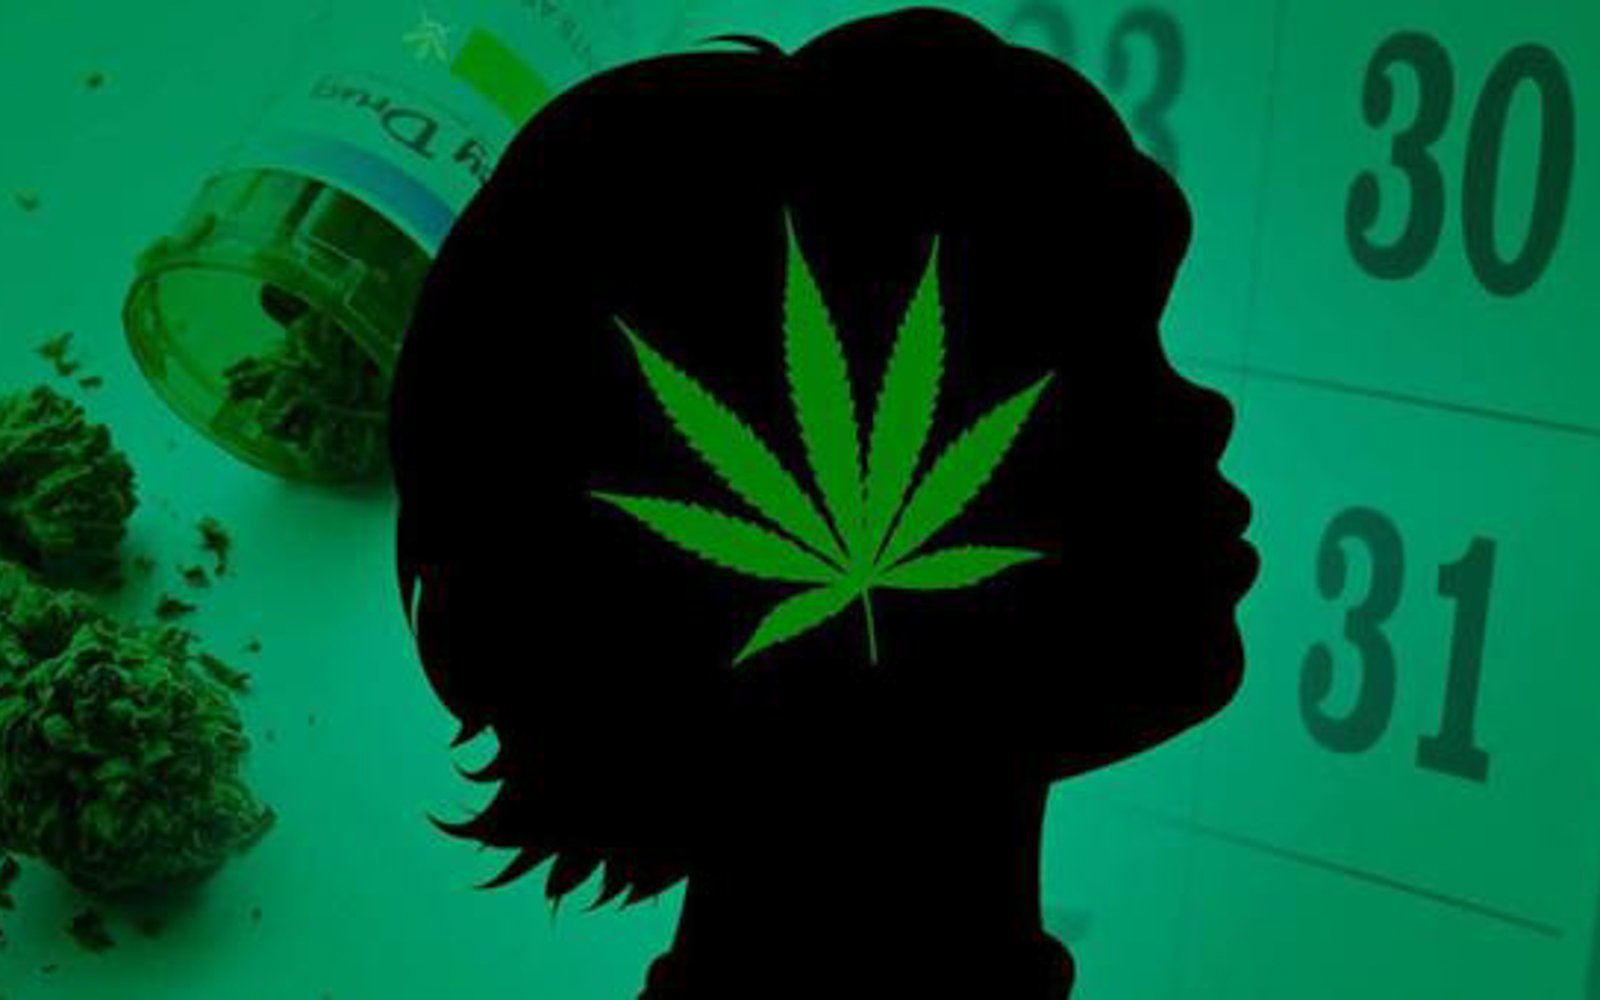 More research funds for CBD for autism